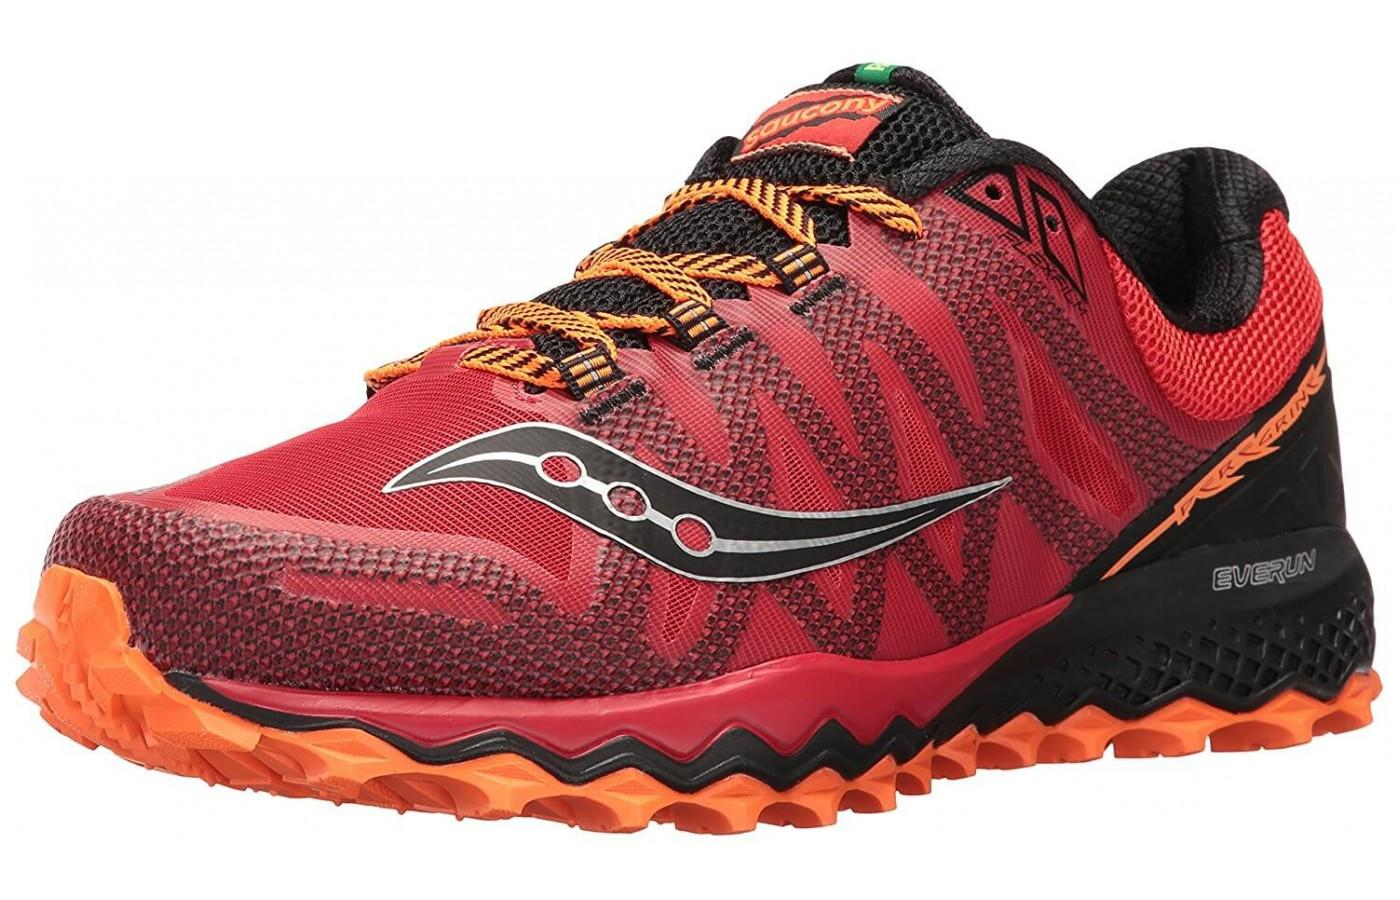 96858b1c9960 Saucony Peregrine 7 in men s orange and red colorway ...